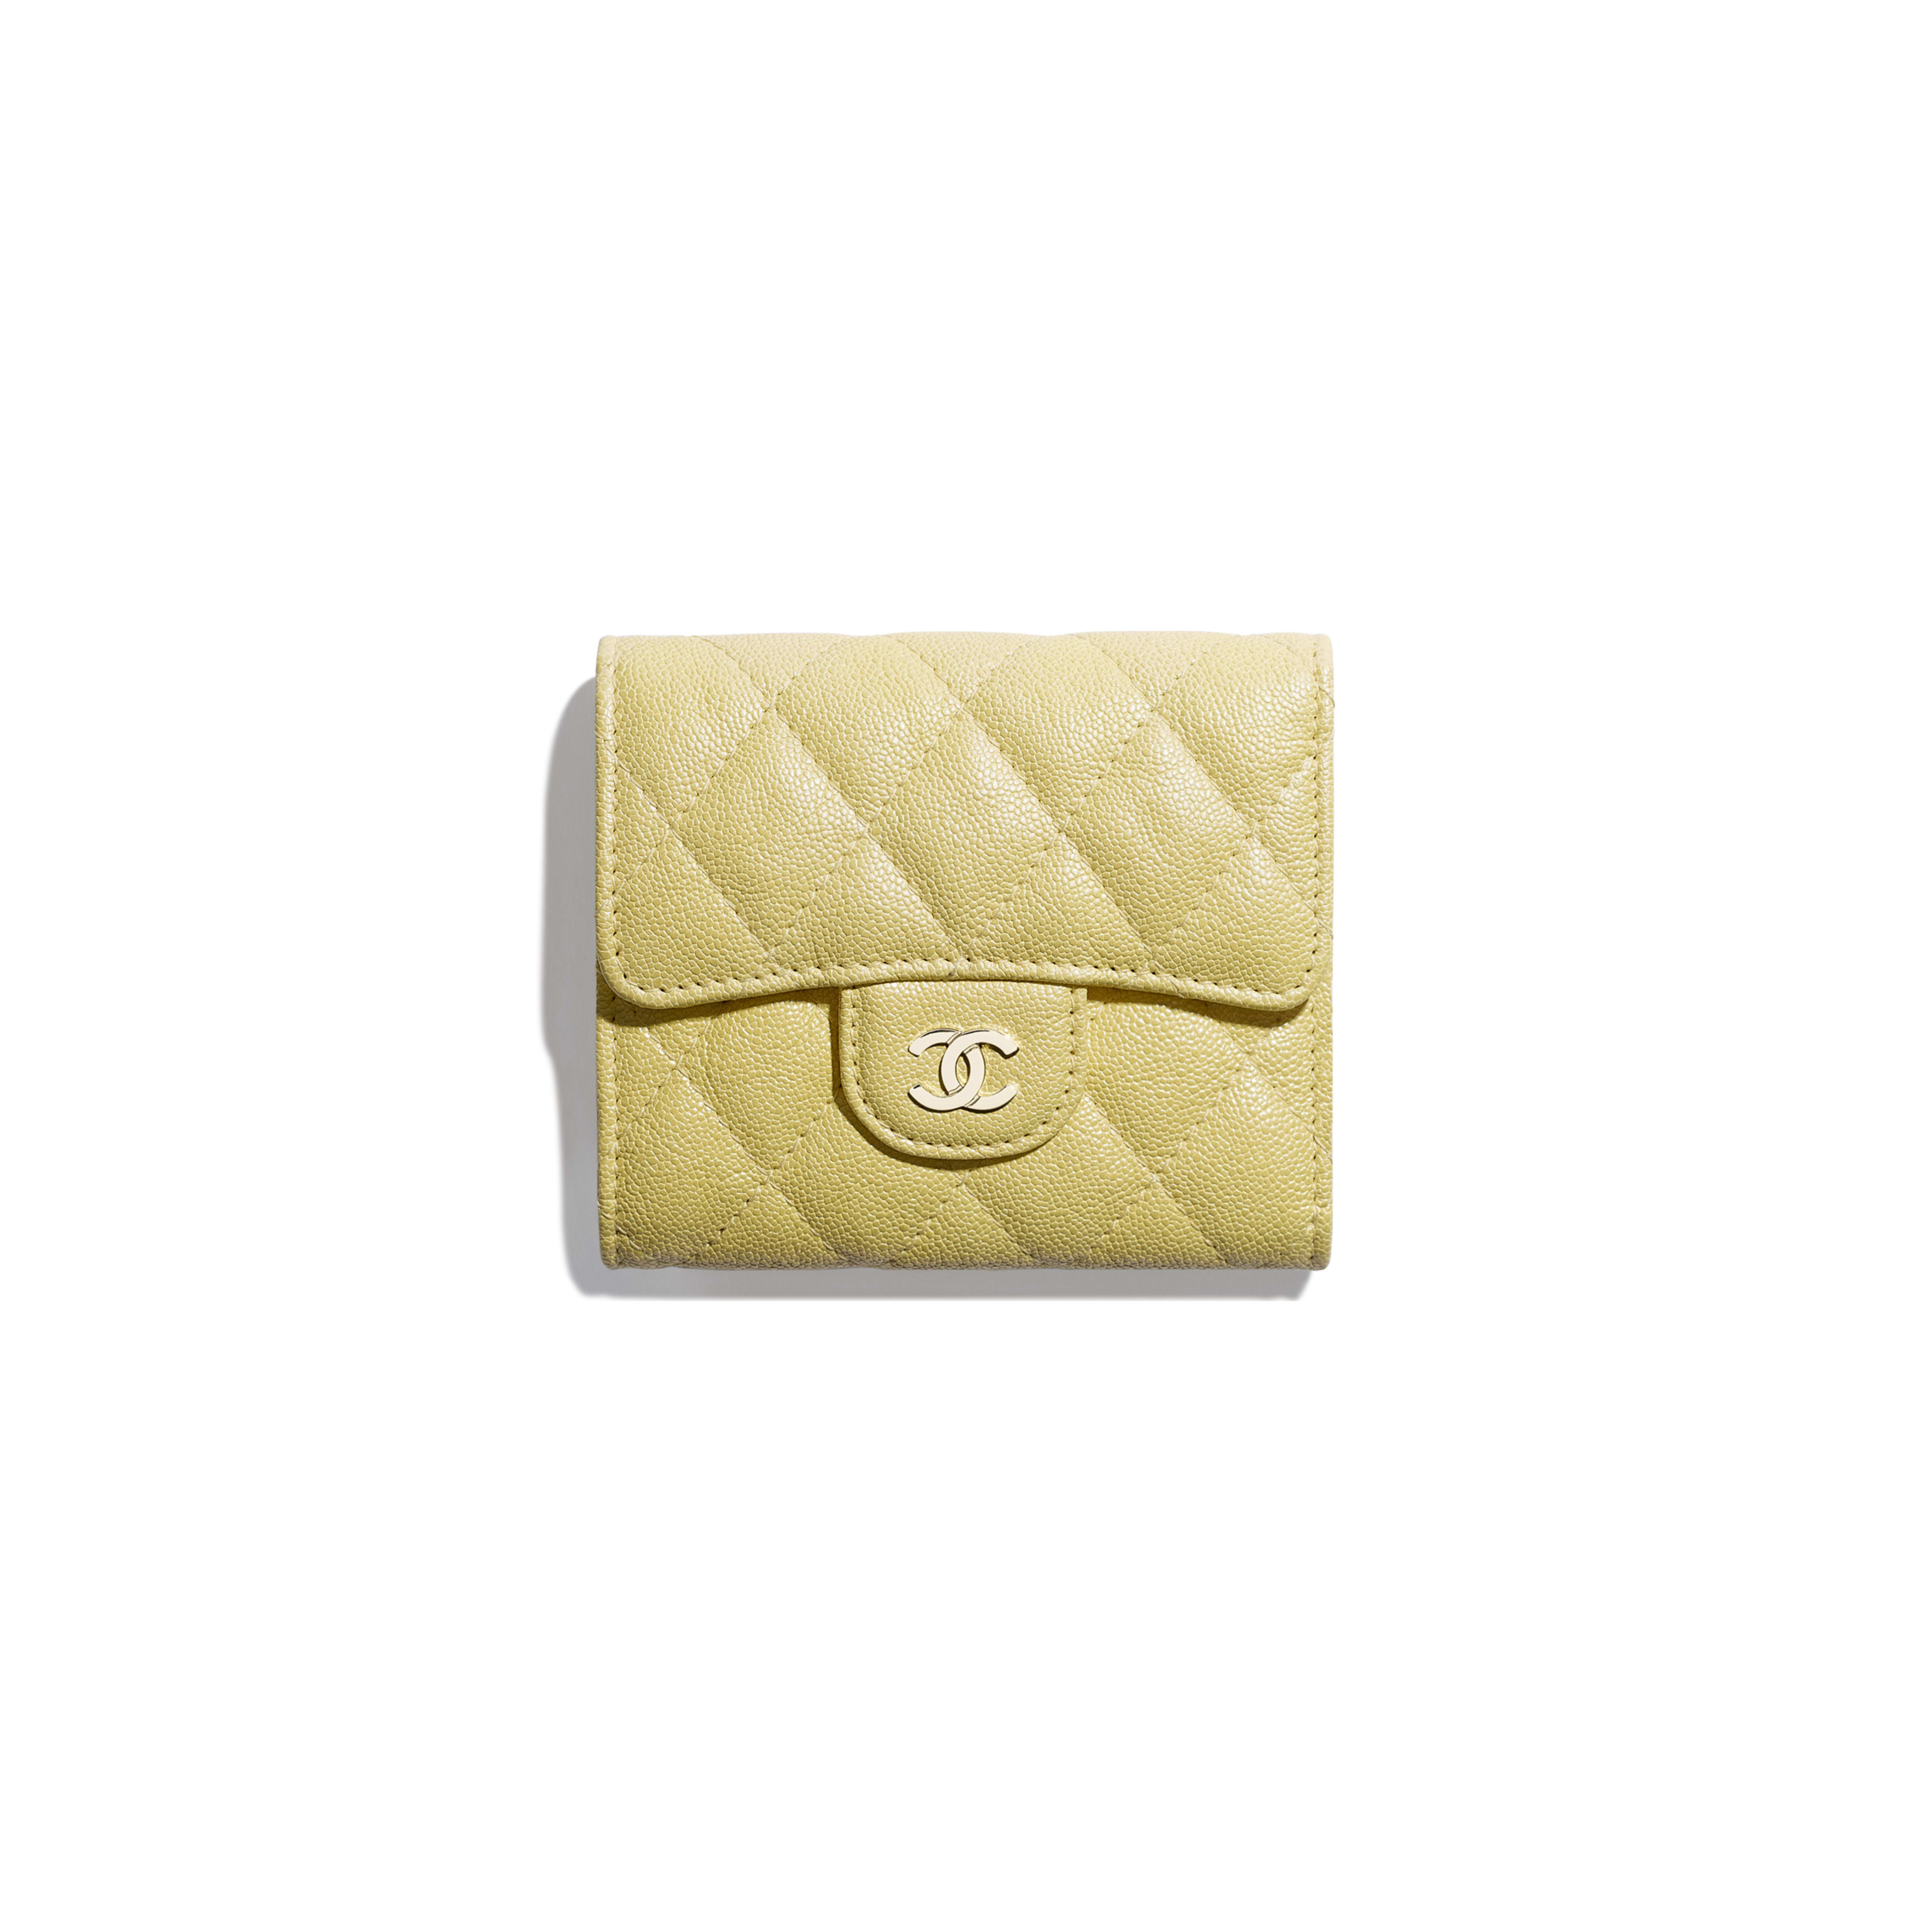 8f549018a5 Classic Small Flap Wallet - Yellow - Iridescent Grained Calfskin   Gold-Tone  Metal ...